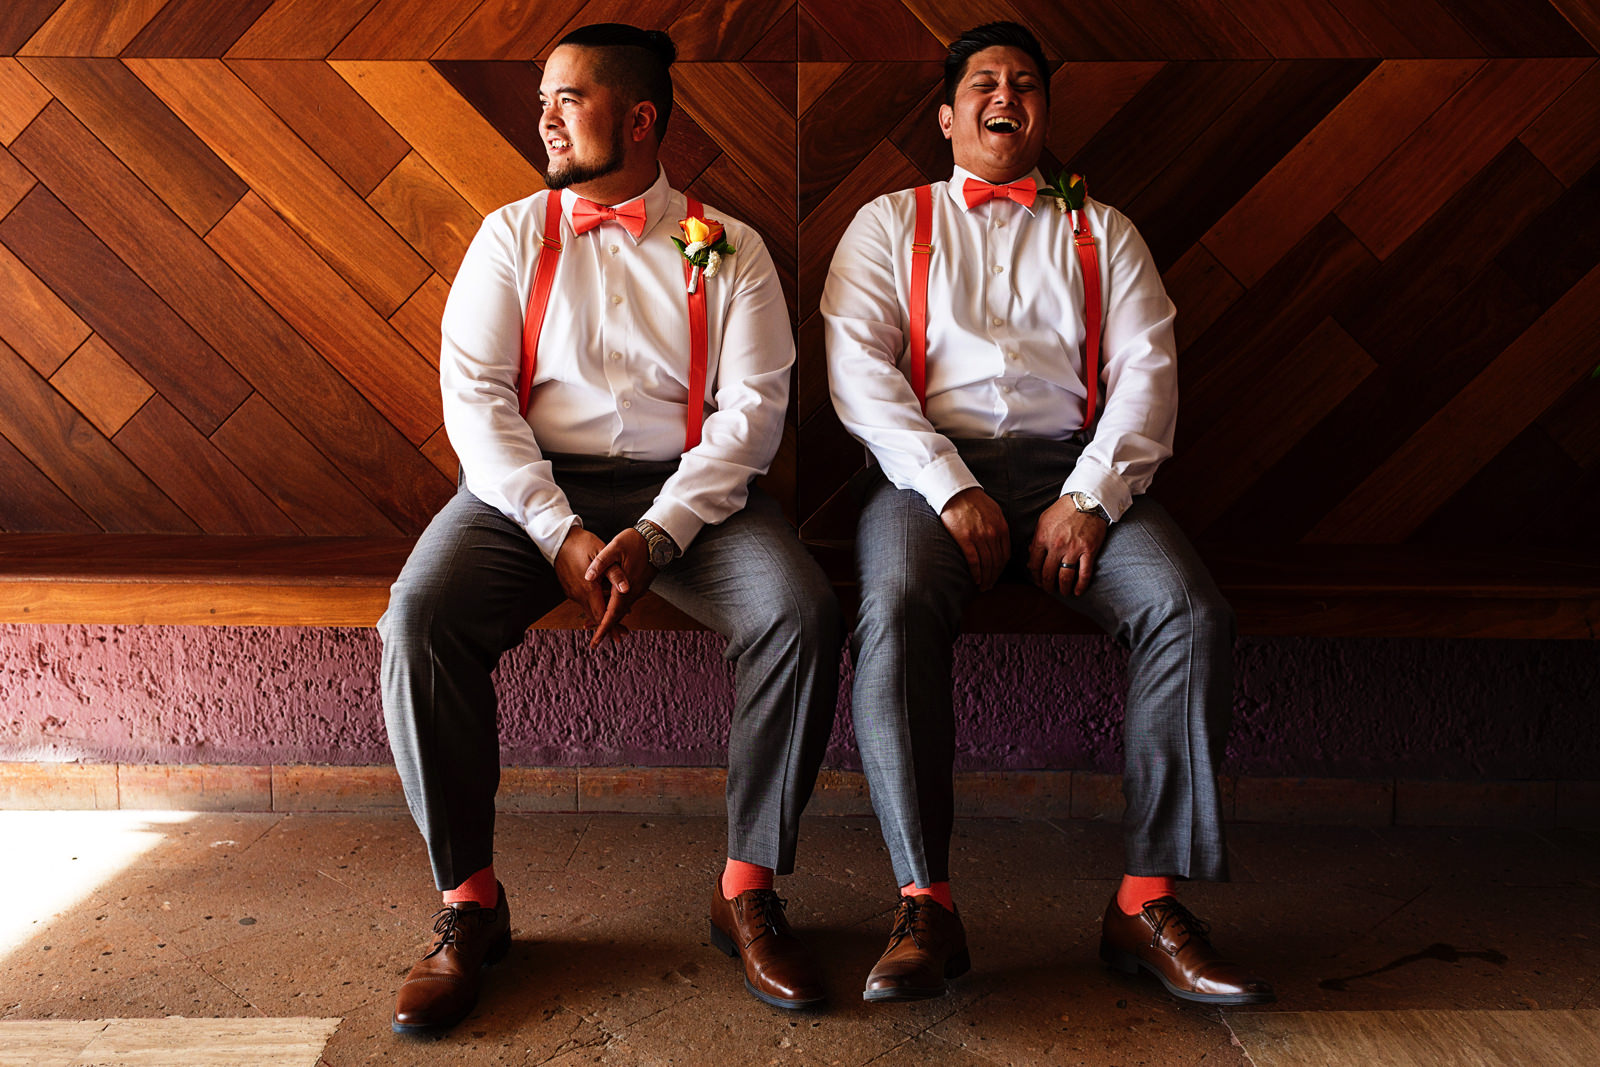 Groom and best man wearing matching outfits laugh sitting on a bench